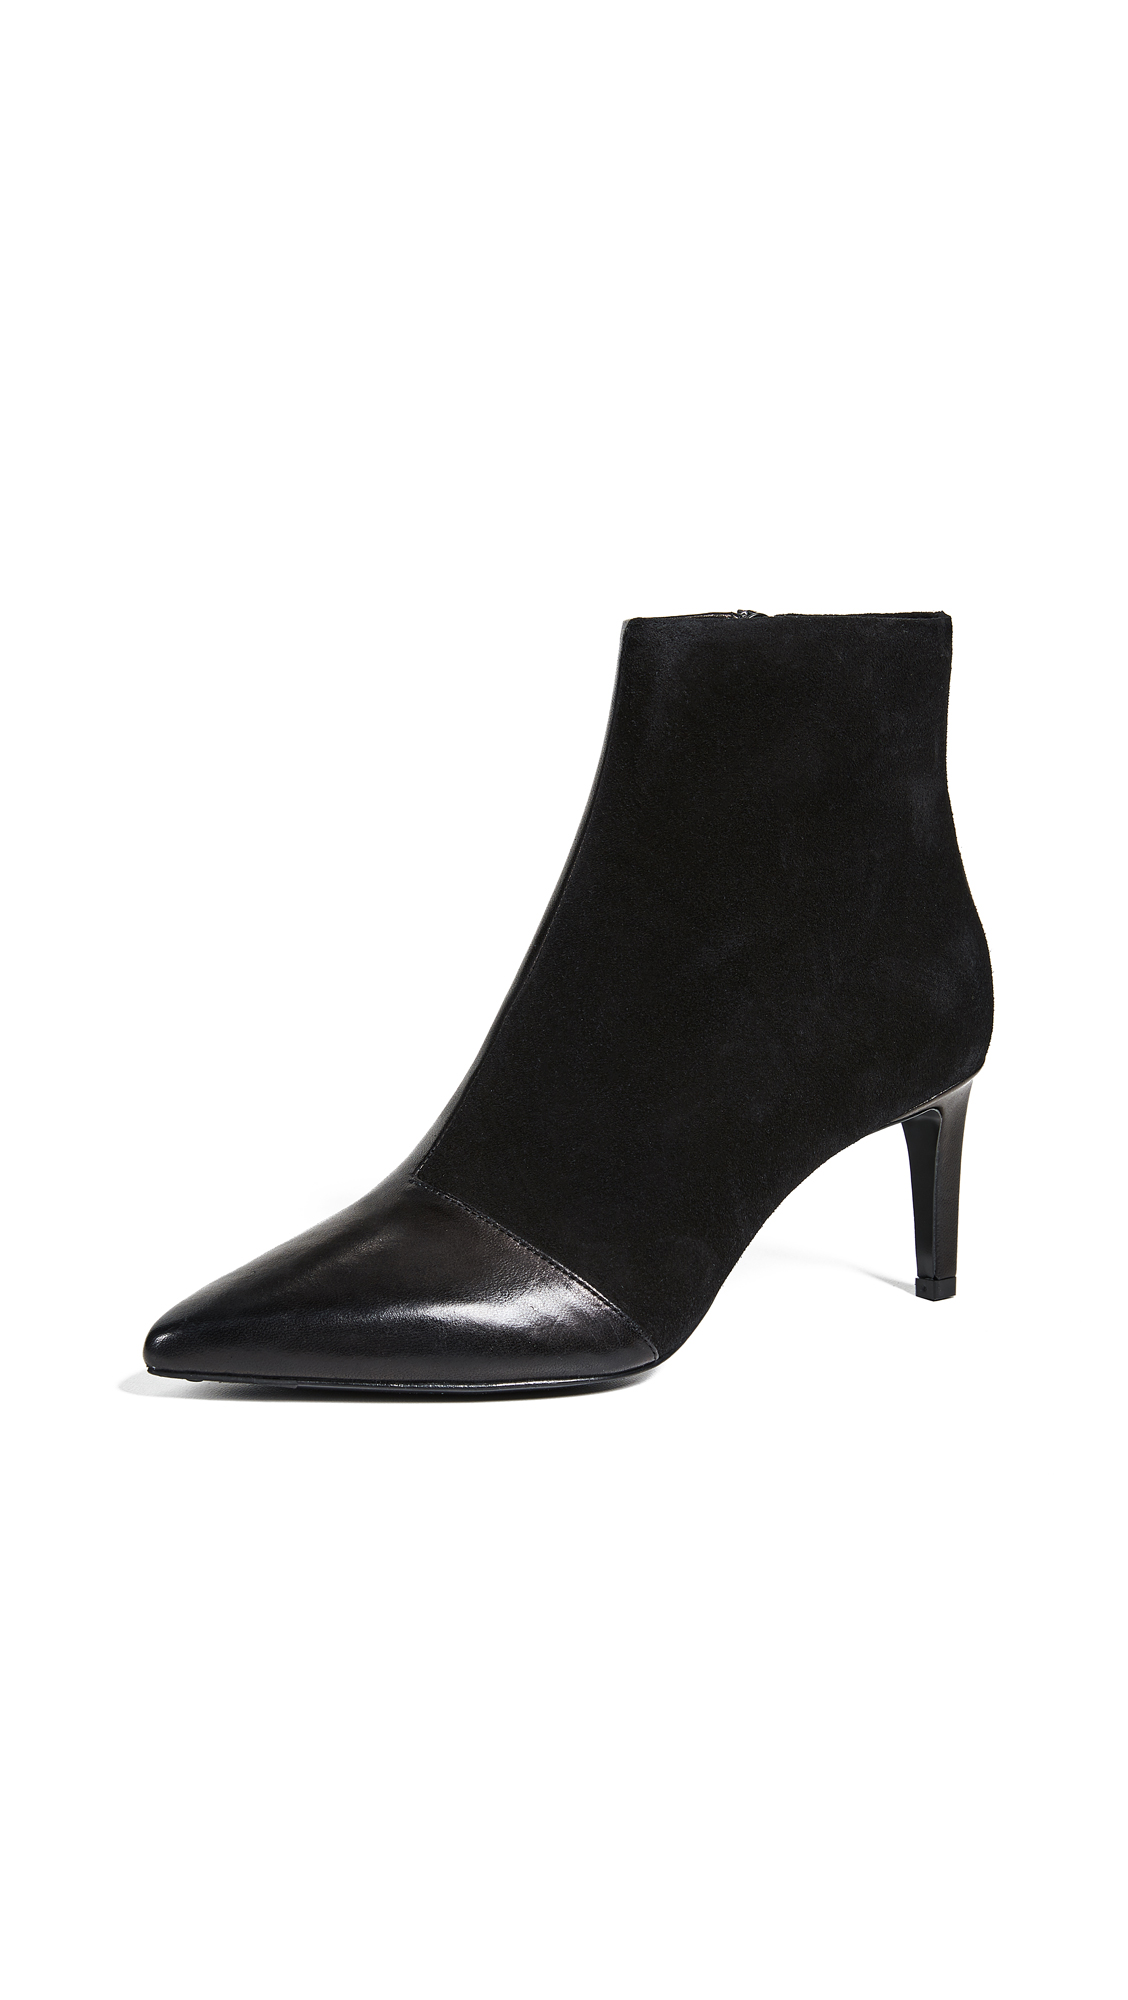 Rag & Bone Beha Leather & Suede Ankle Boots - Black Size 6